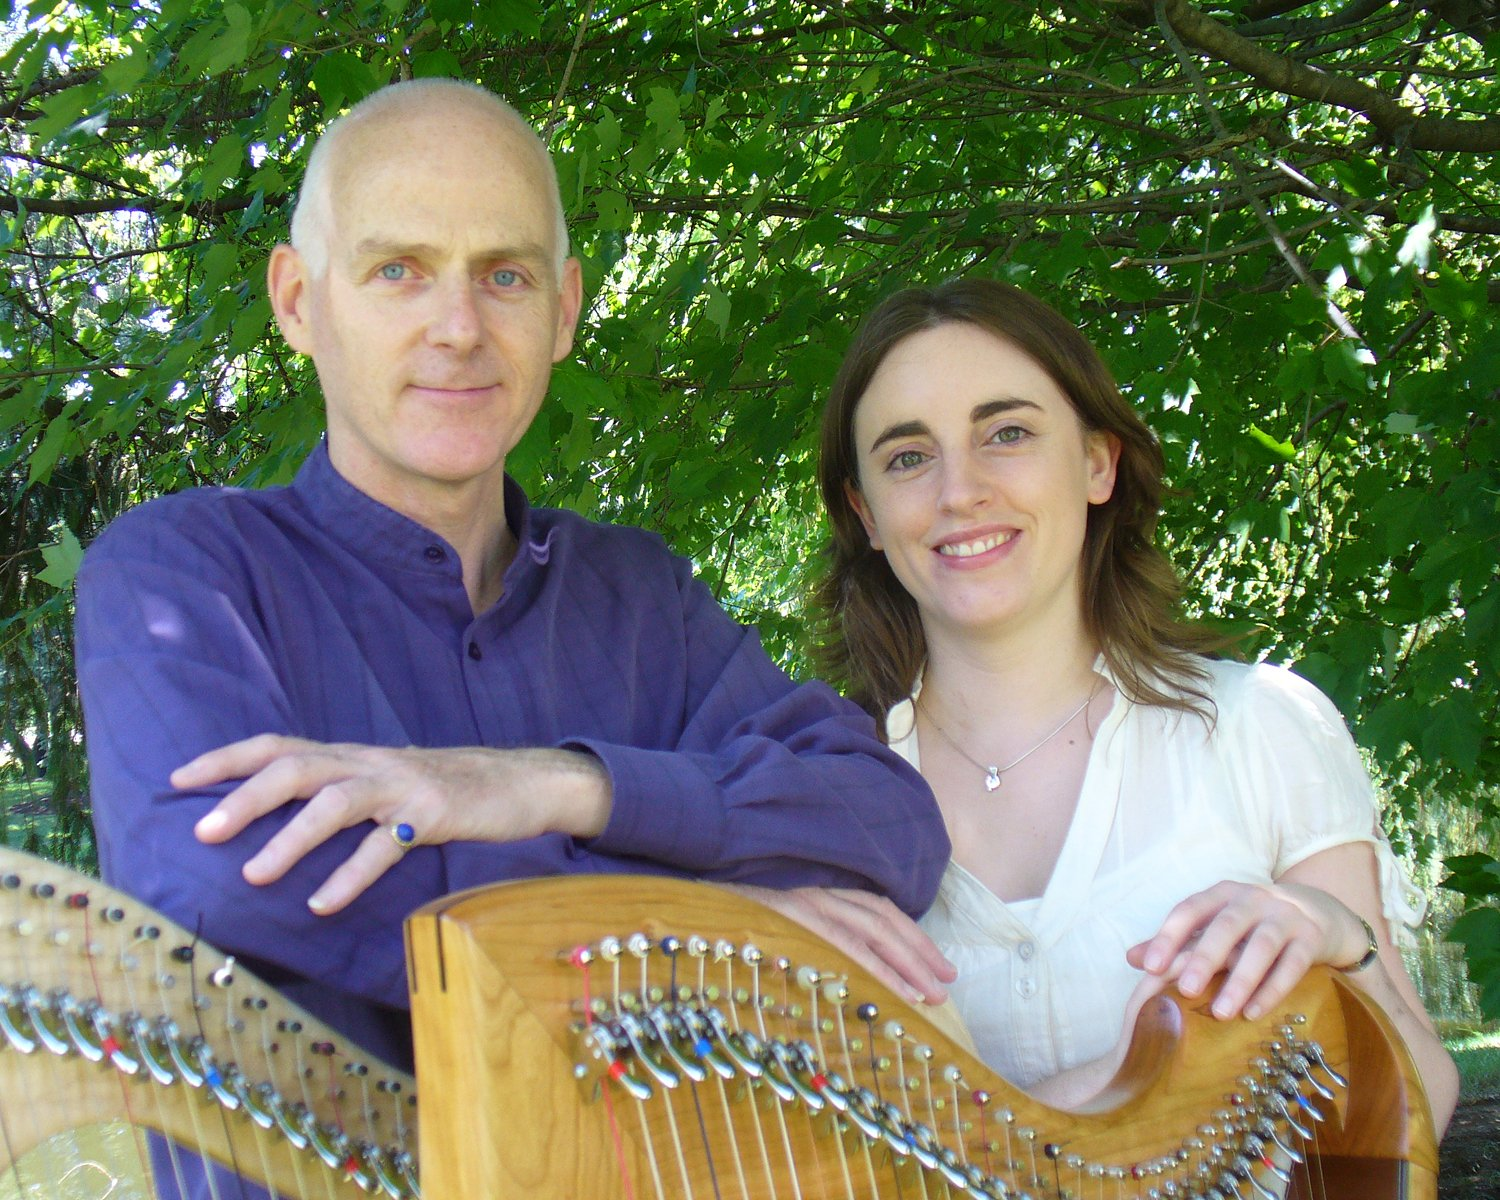 William Jackson, Grainne Hambly